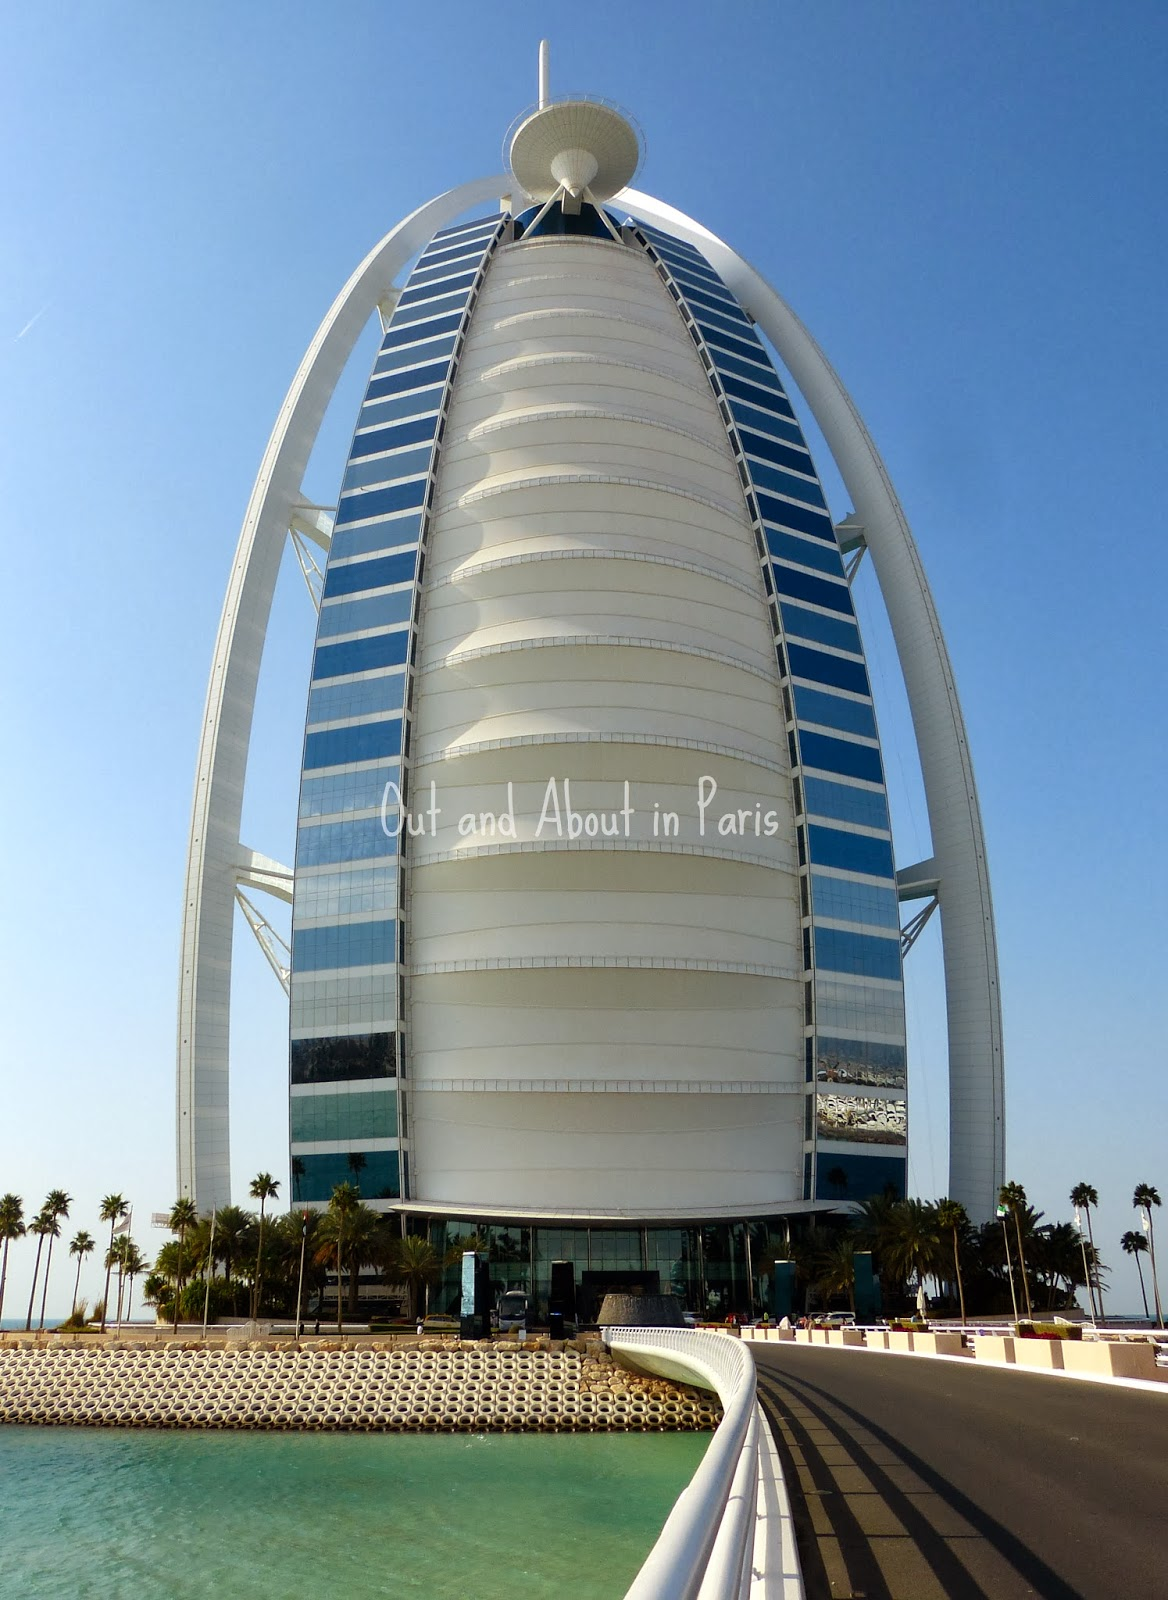 Pin Parasol Distance Maison afternoon tea at the world's only 7-star hotel, the burj al